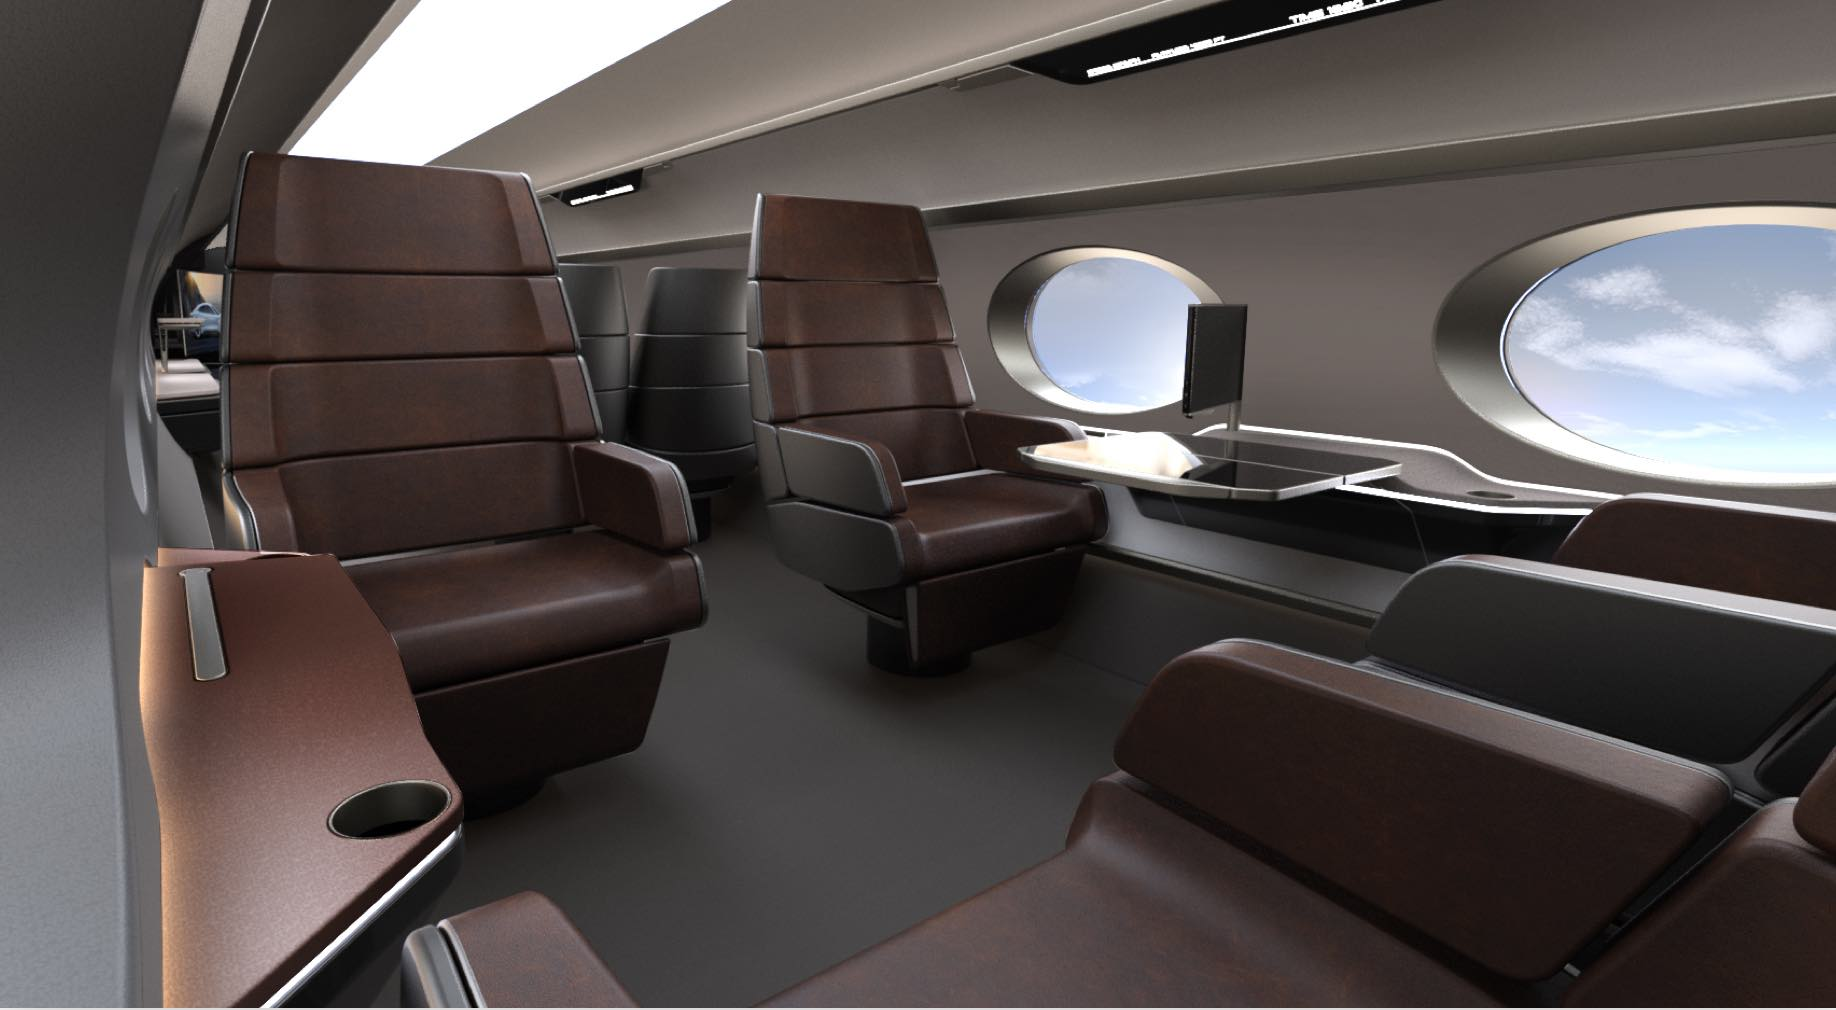 Captivating CHAIR. Redefining VIP Aircraft Seating